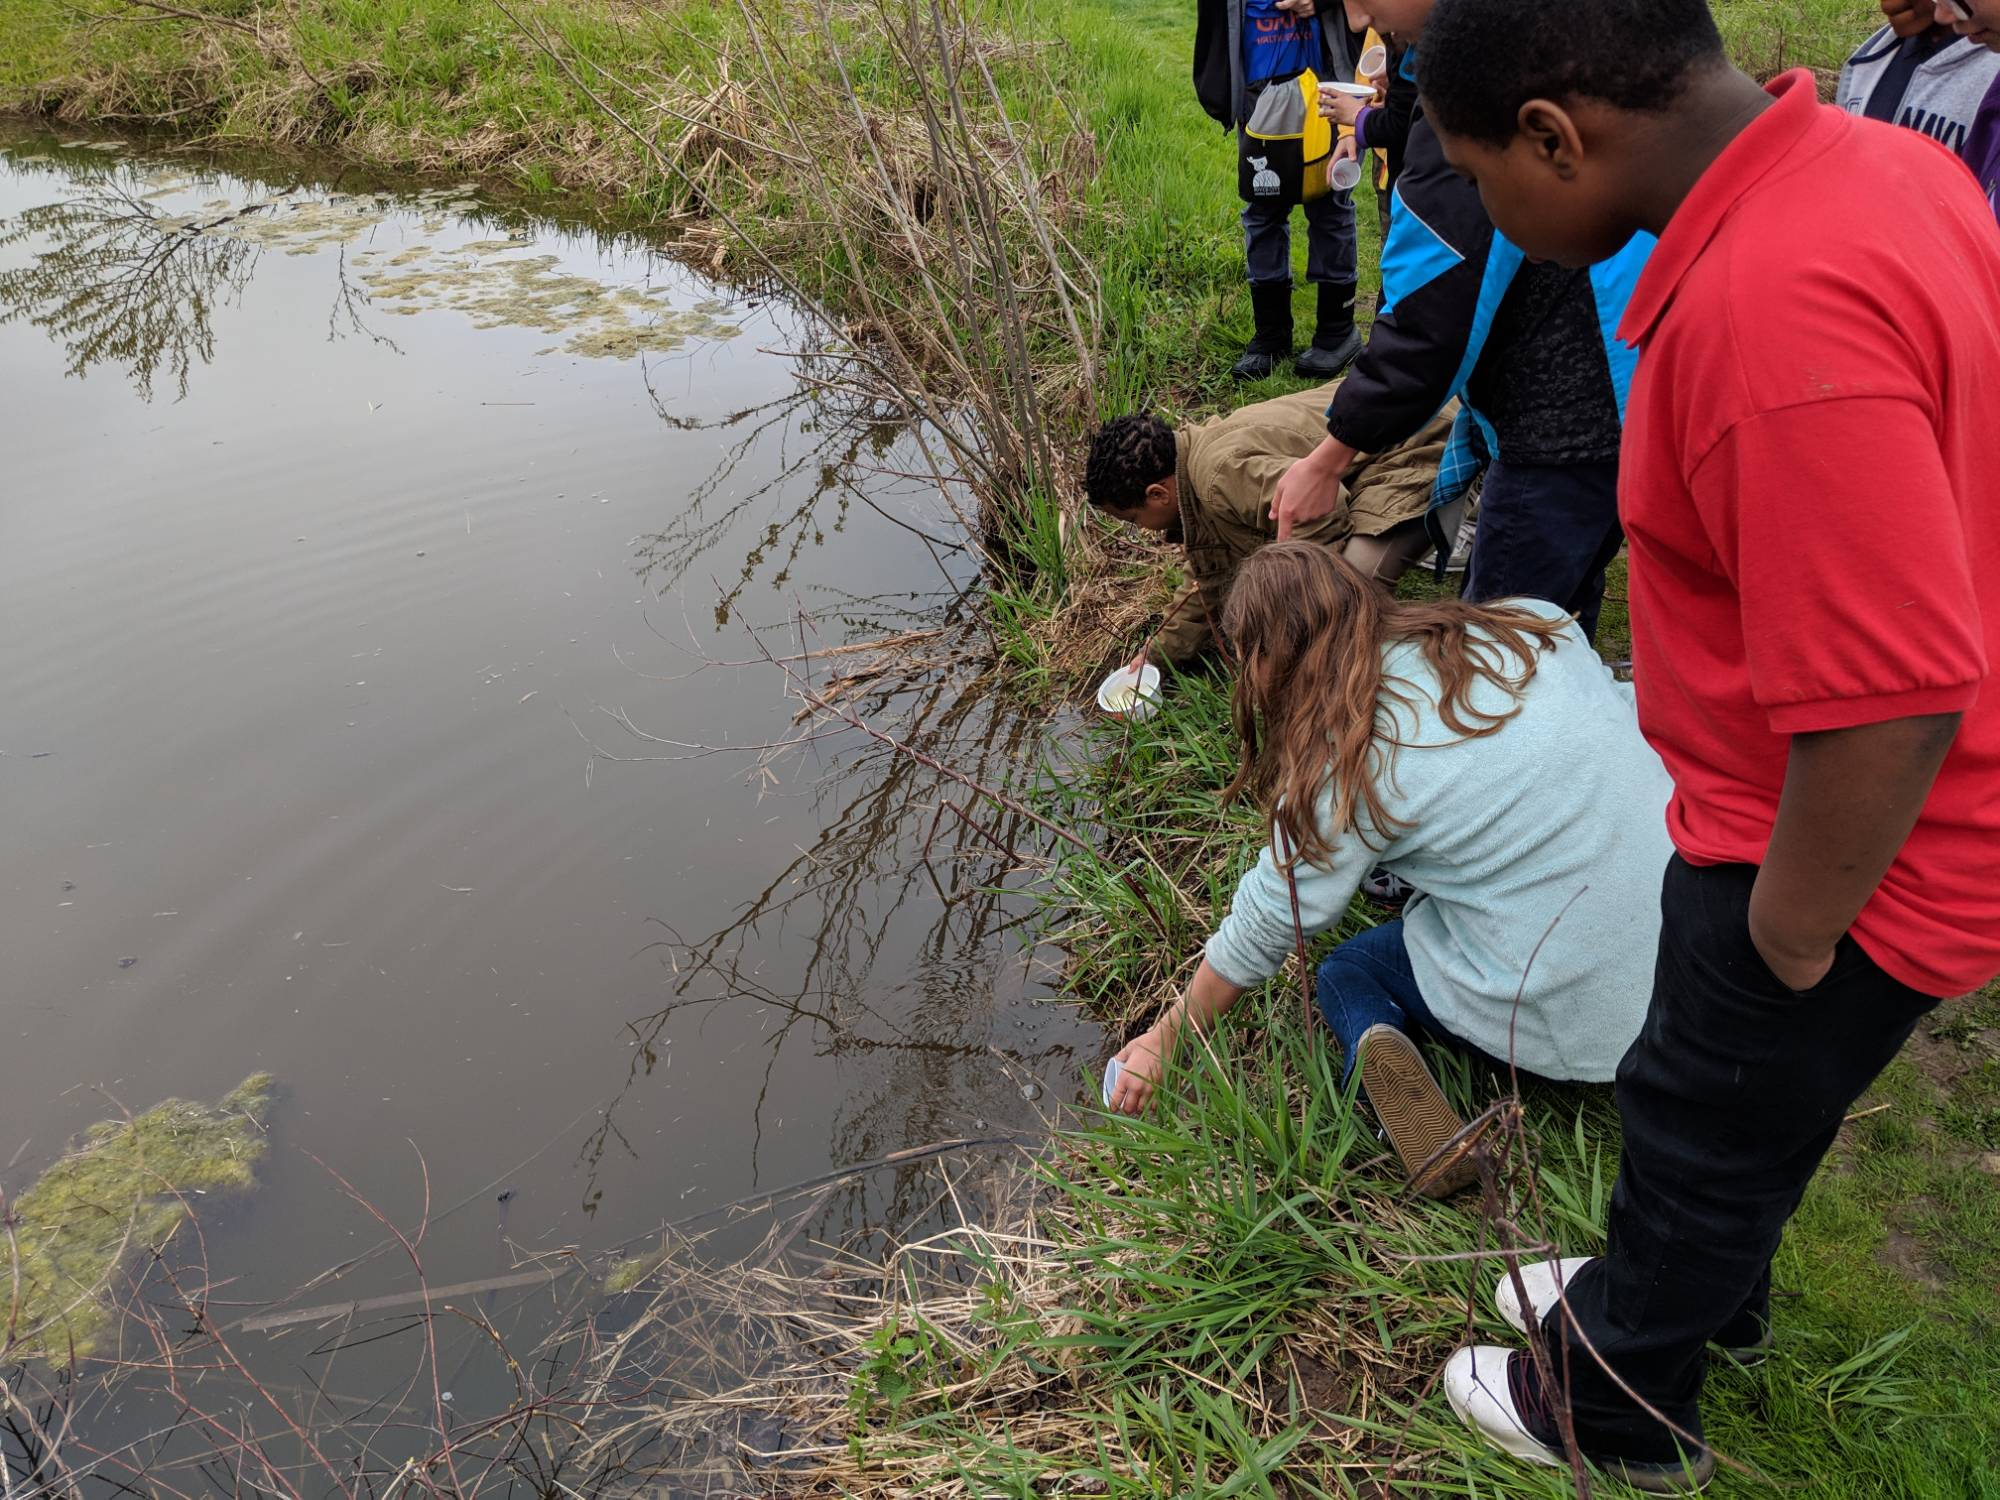 Students from Grand Rapids Montessori school release salmon into a stream at Roselle Park